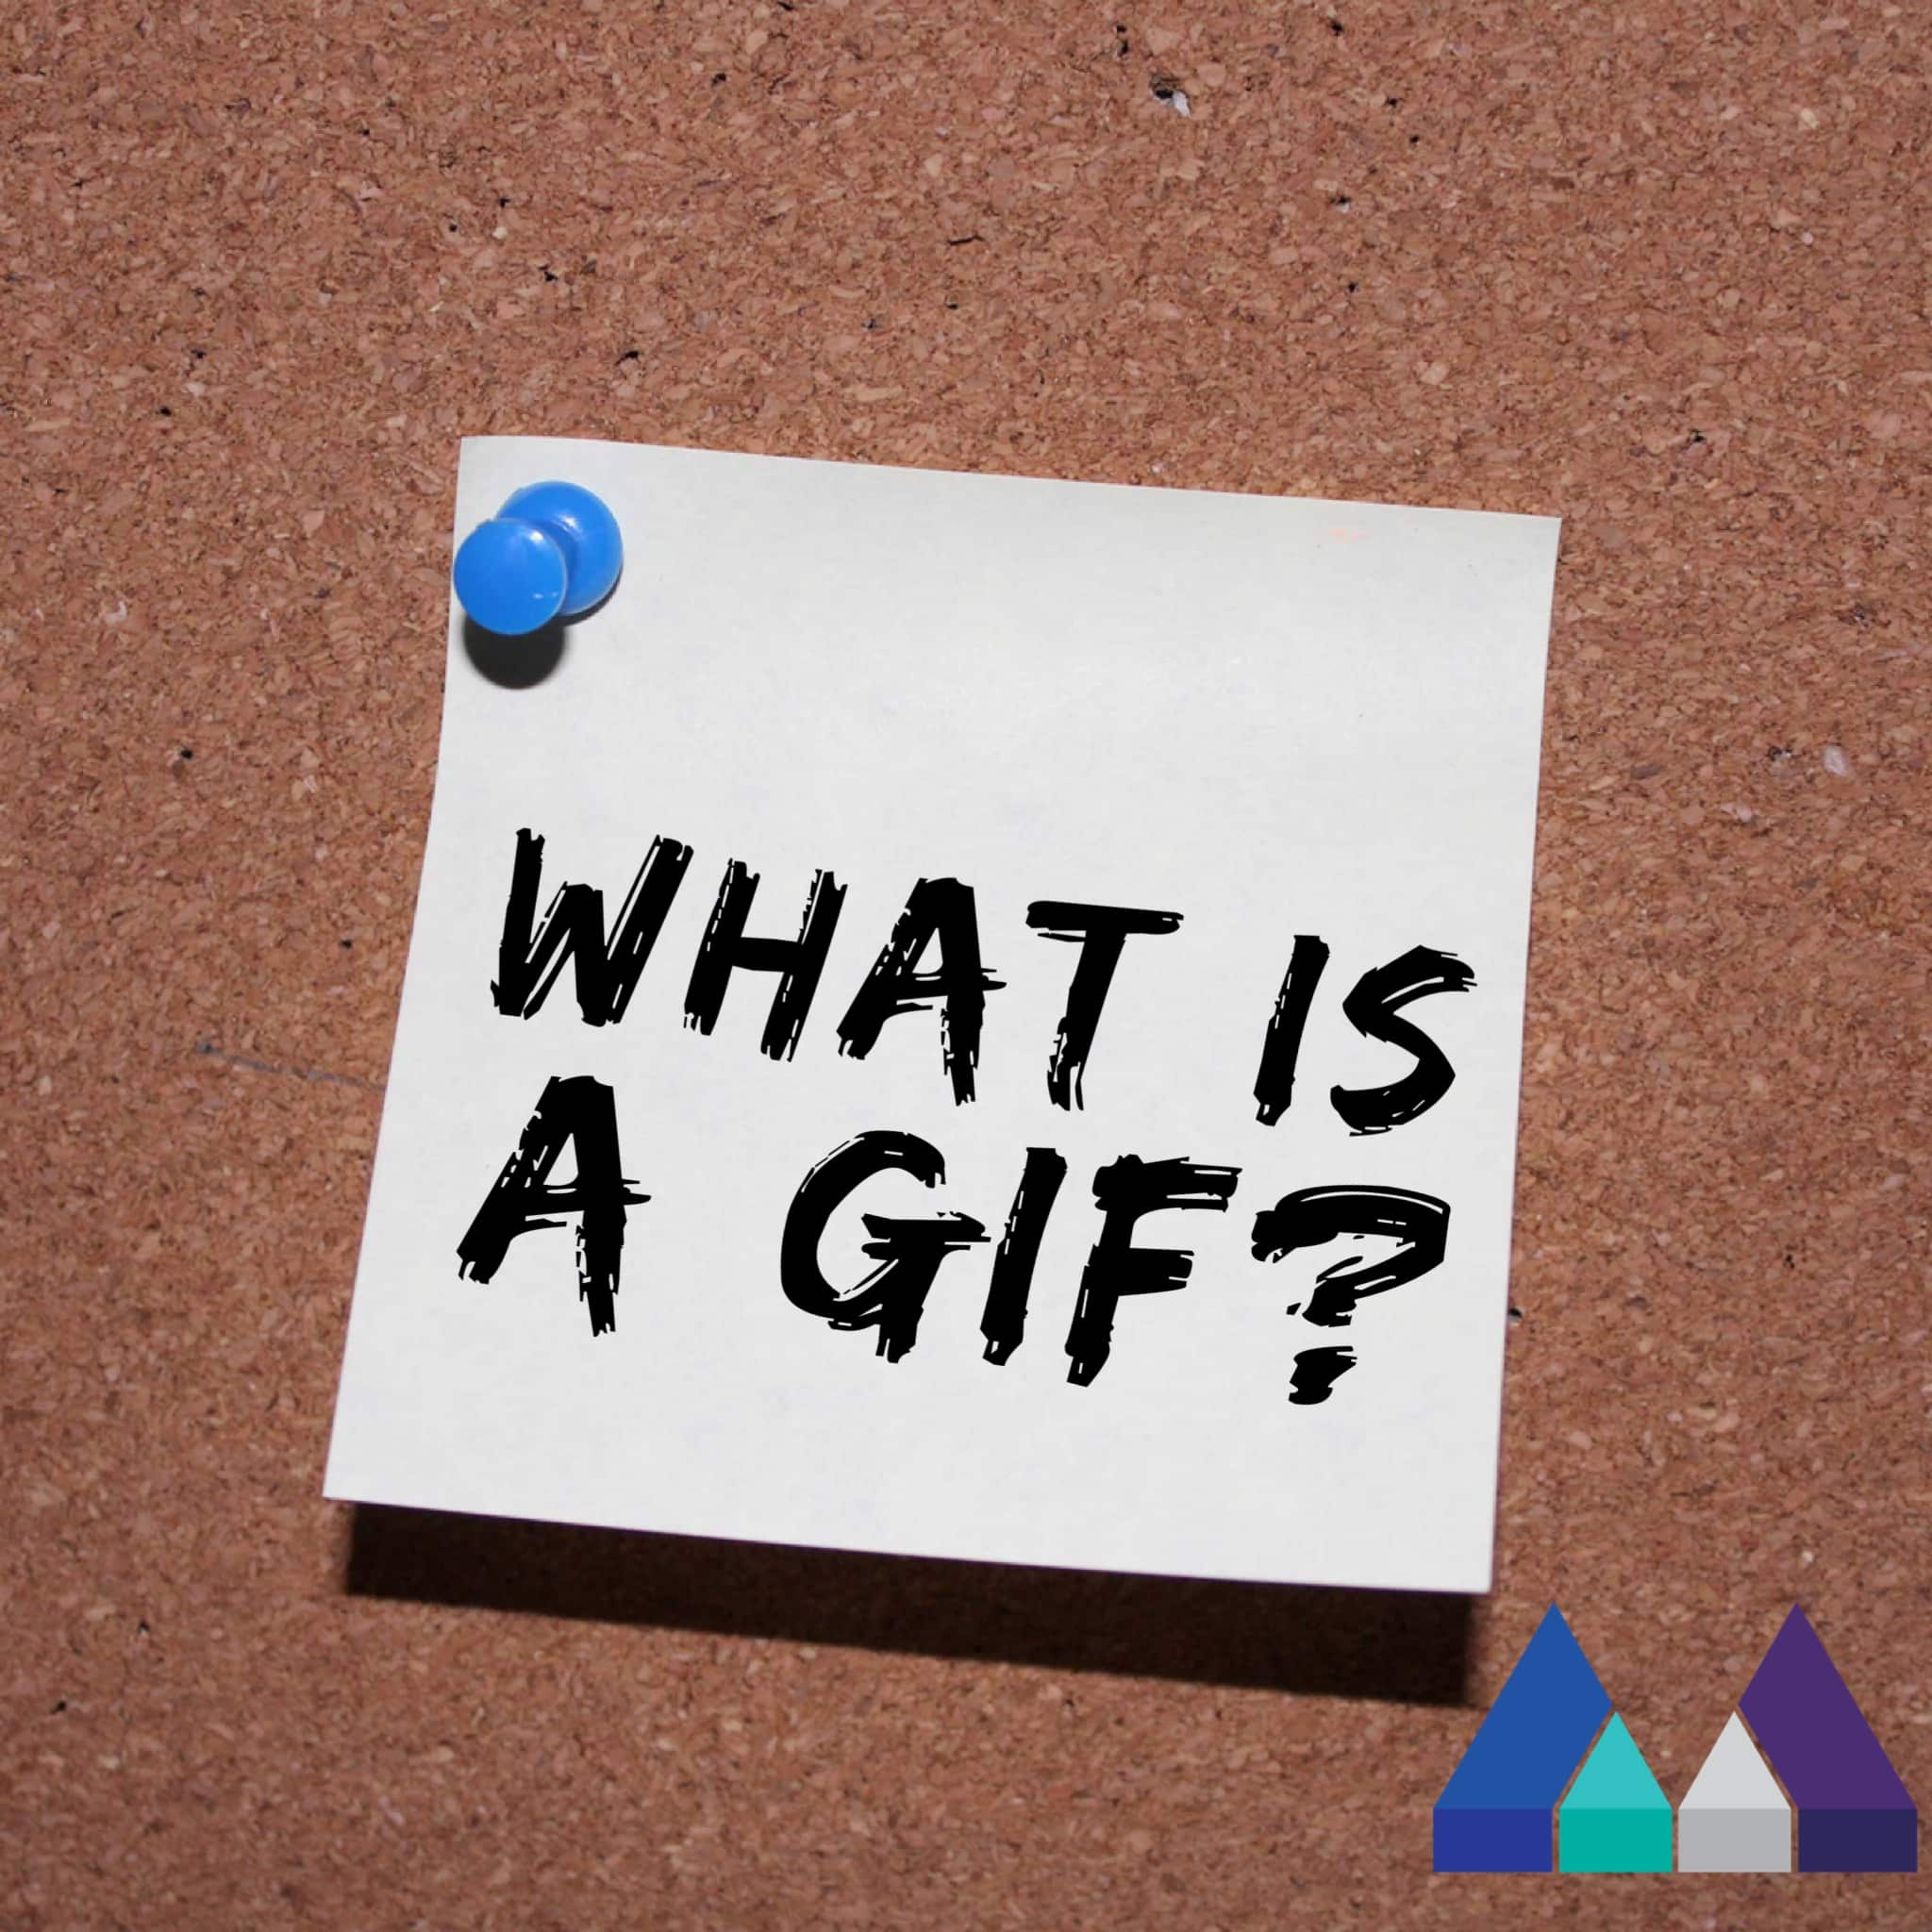 What is a GIF?